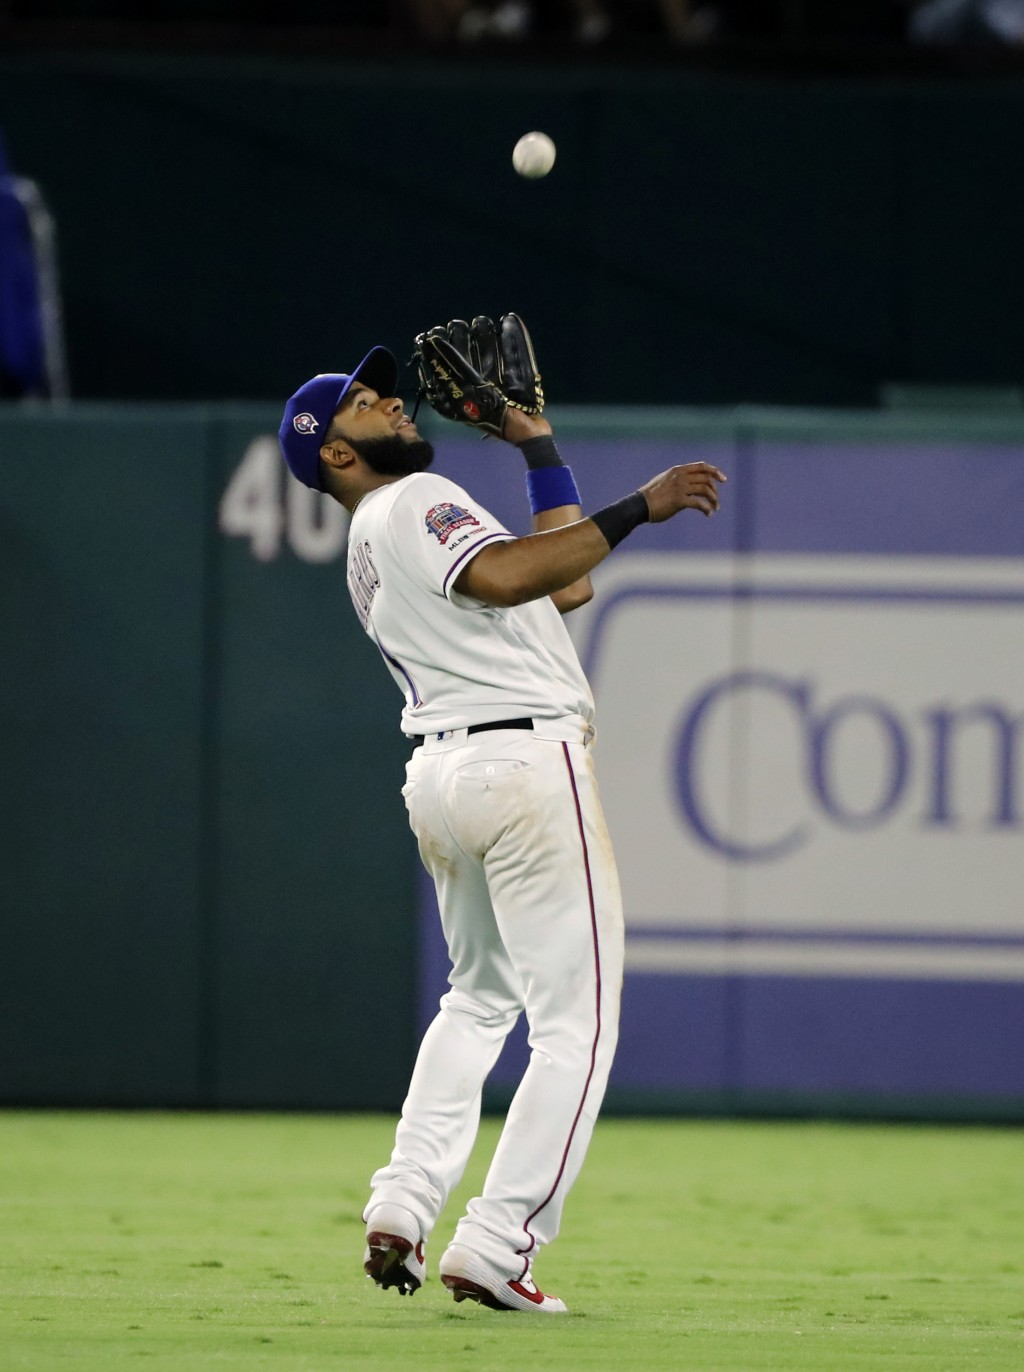 Texas Rangers' Elvis Andrus reaches up to field a fly out by Tampa Bay Rays' Joey Wendle during the fifth inning of a baseball game in Arlington, Texa